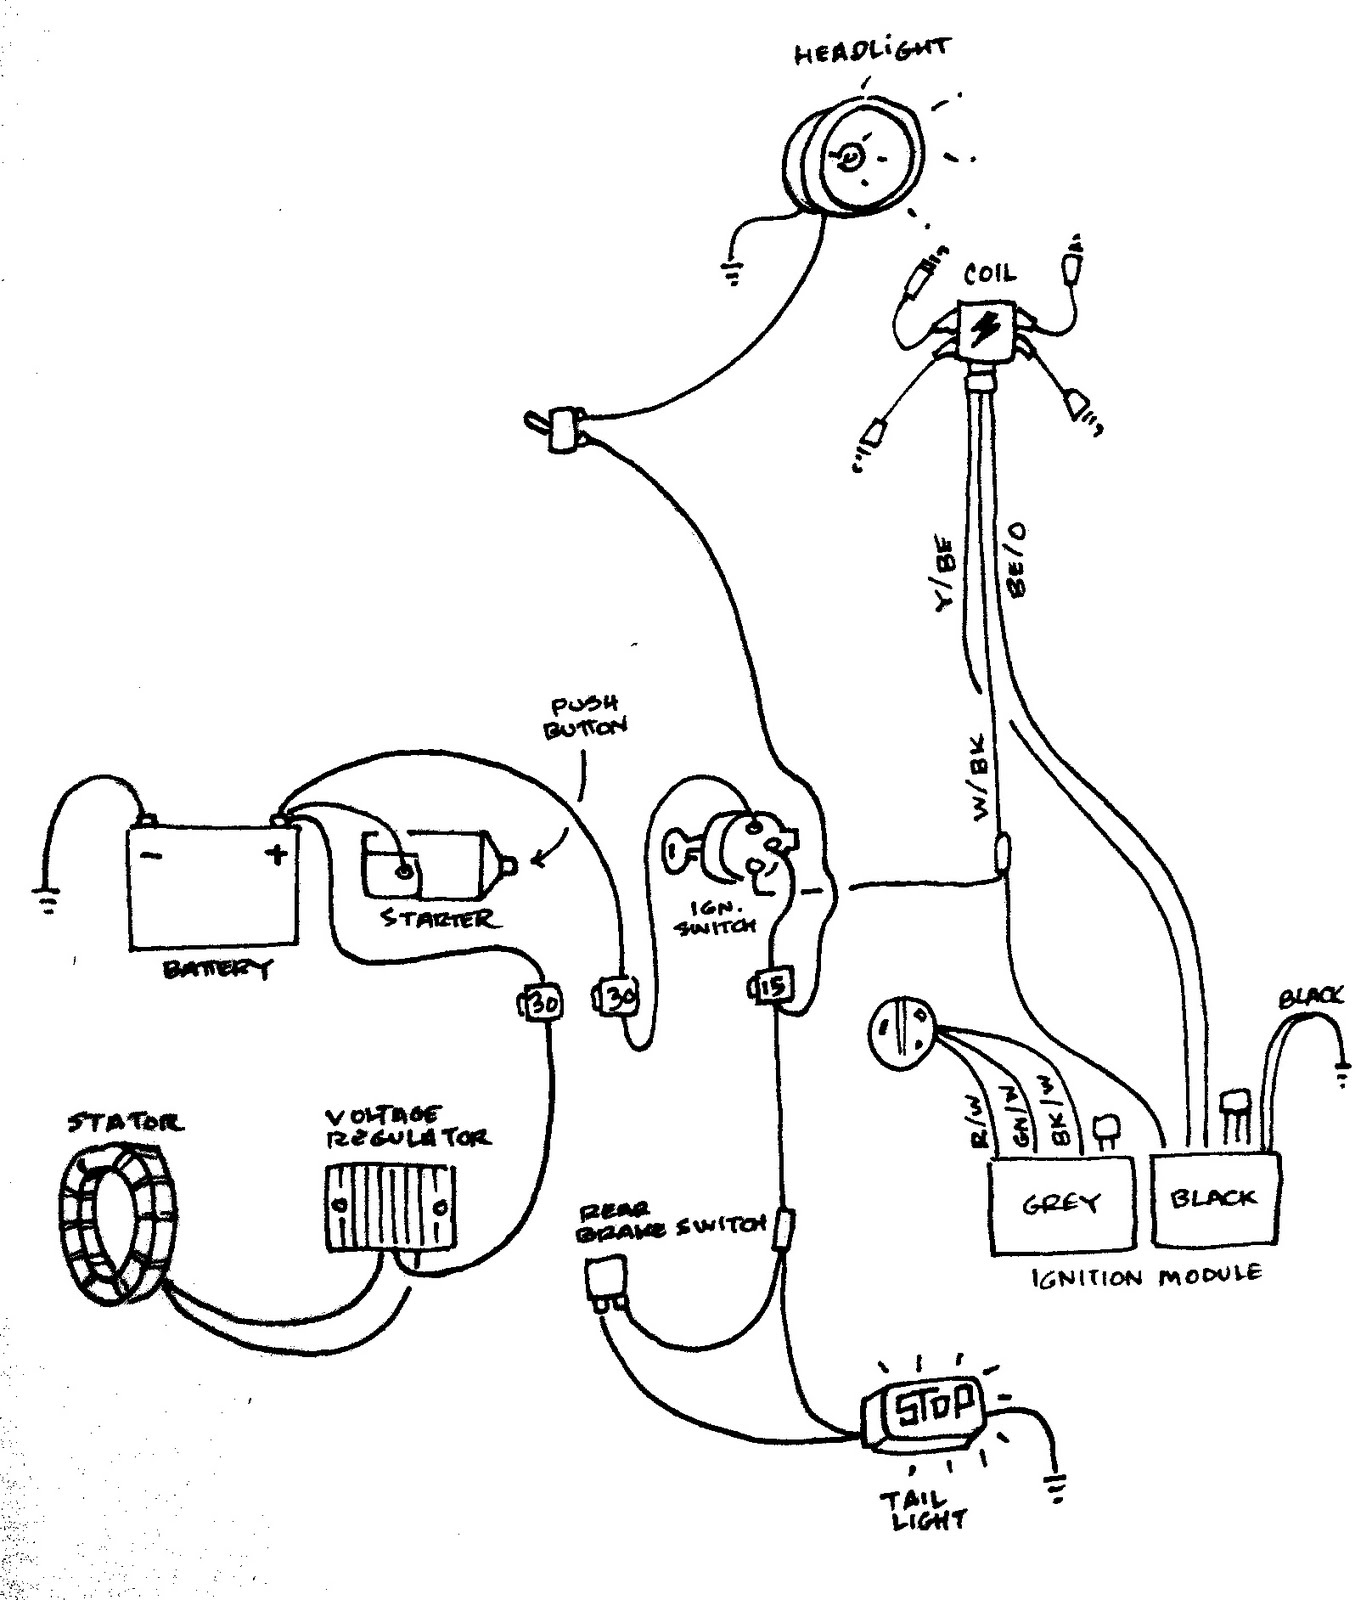 new biltwell blog sporty wiring how to